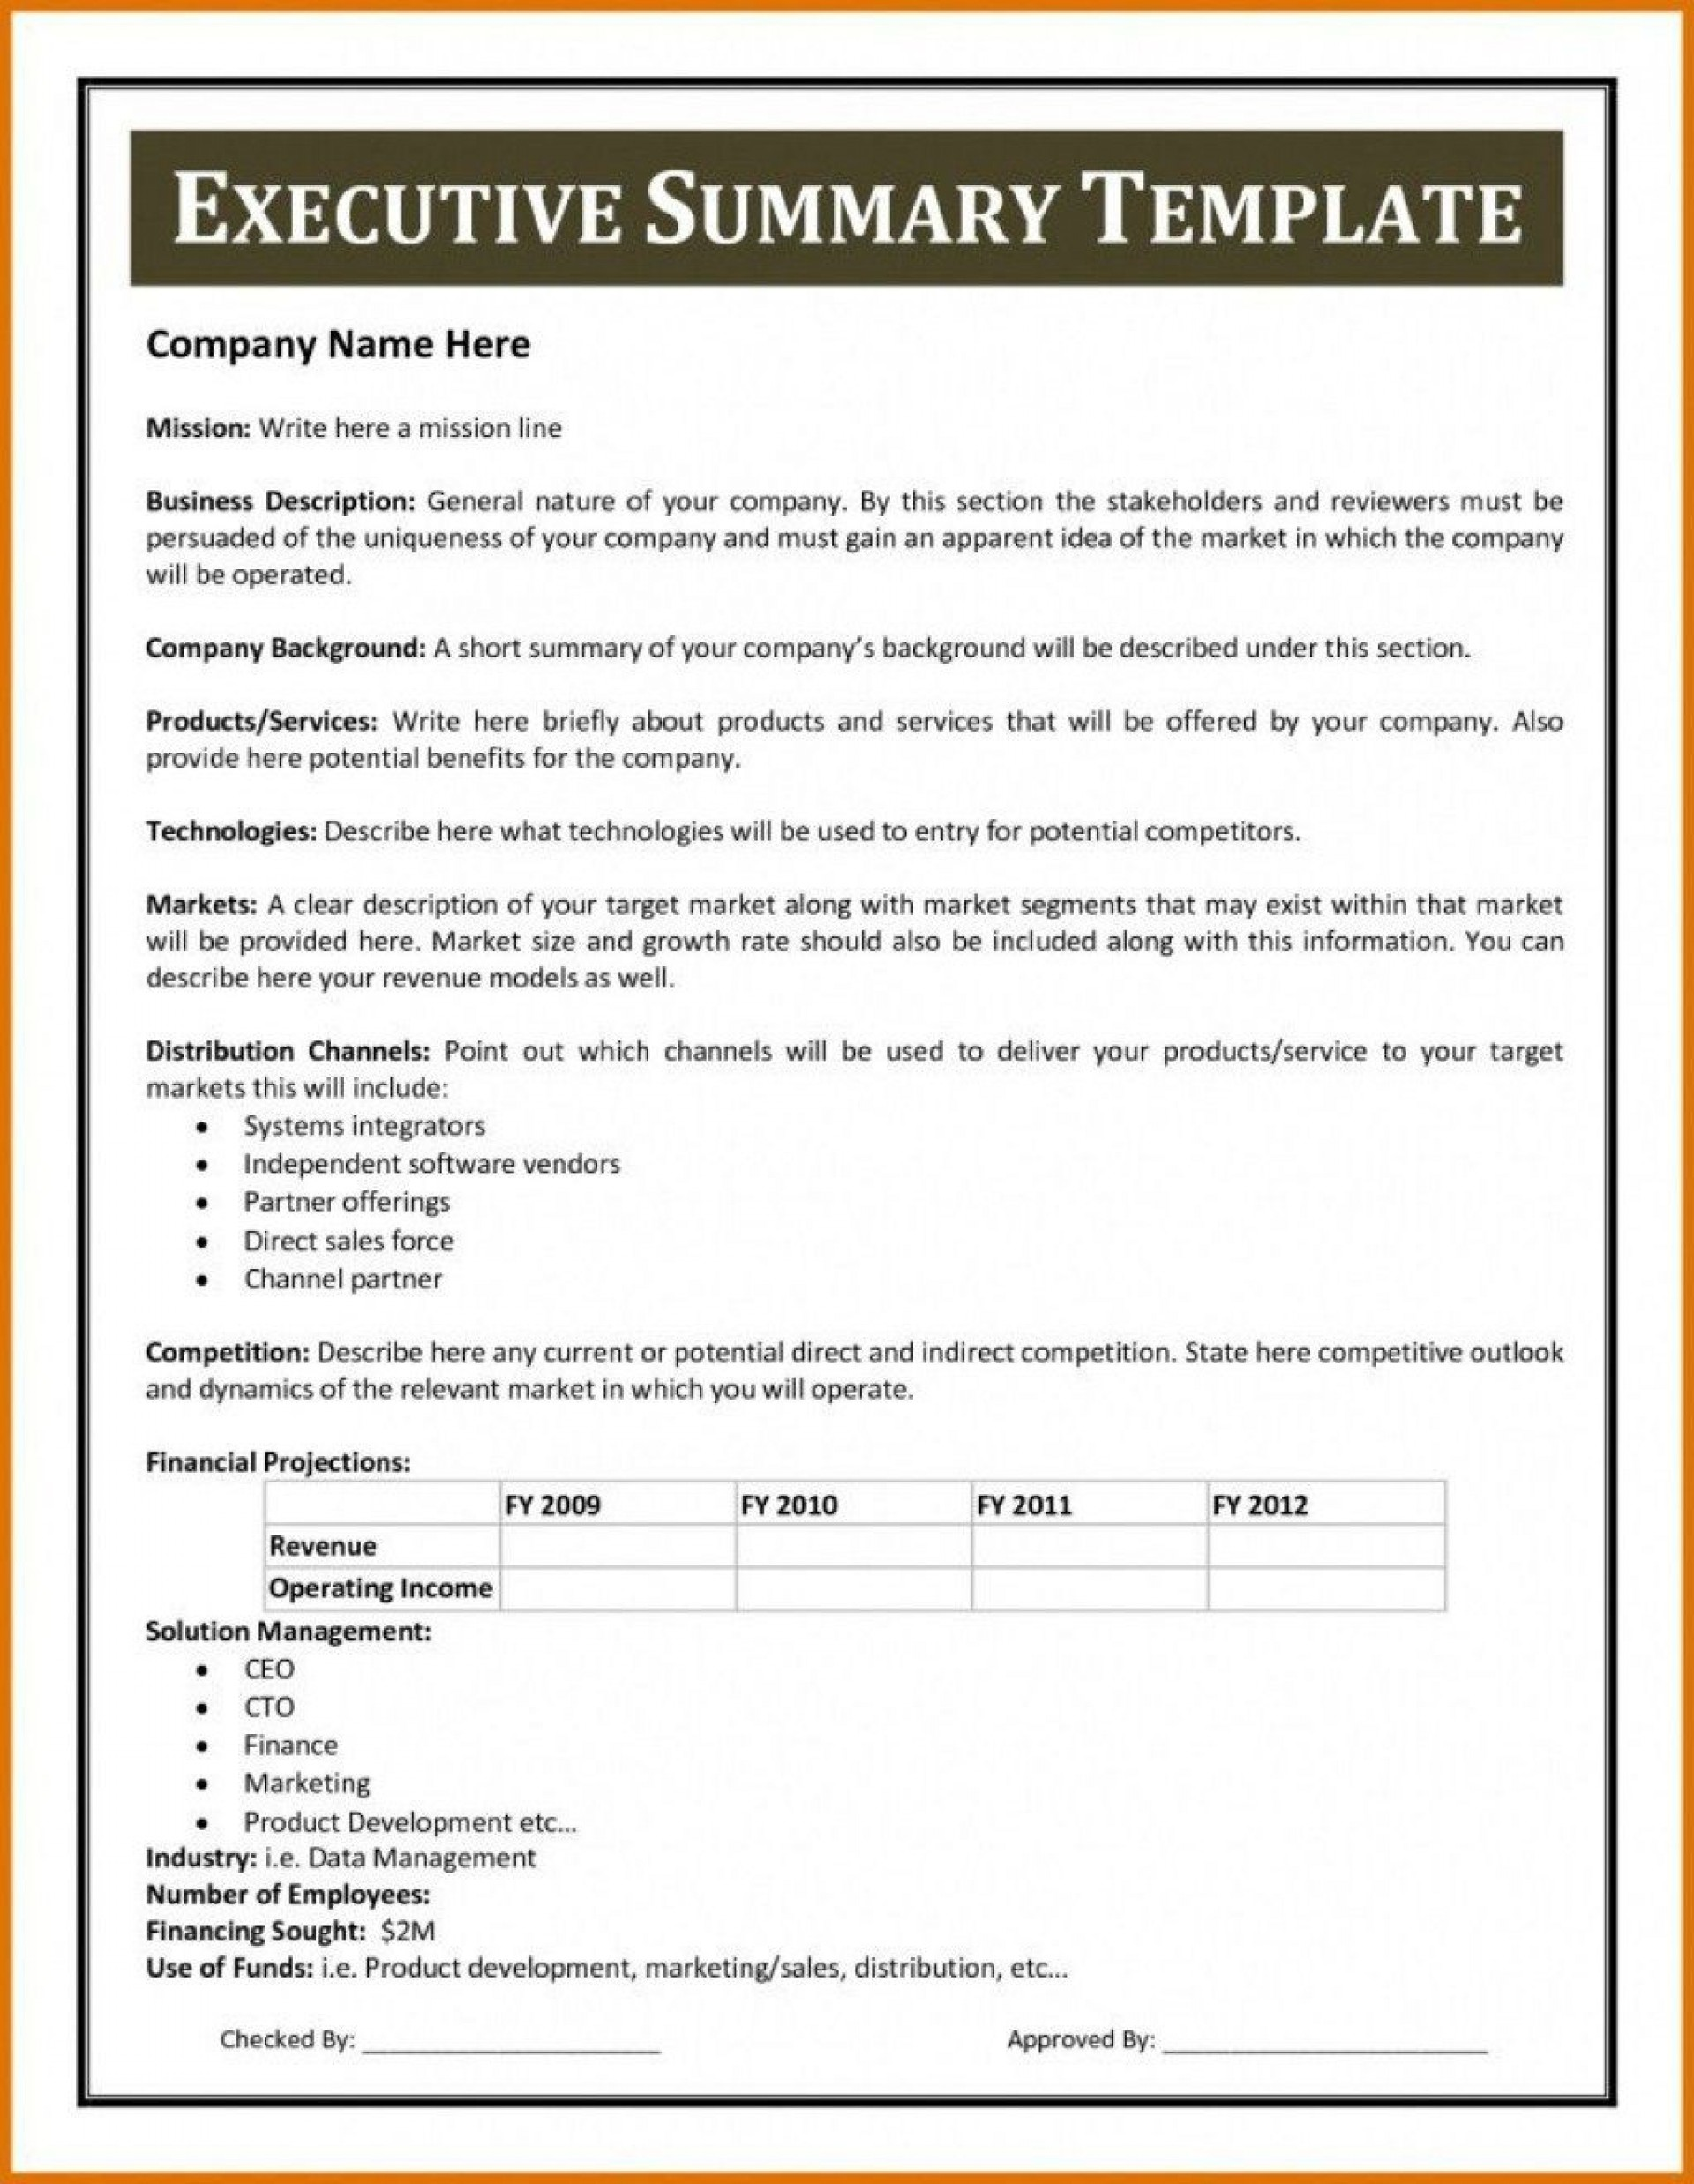 010 Wondrou Executive Summary Word Template Free Download Concept 1920